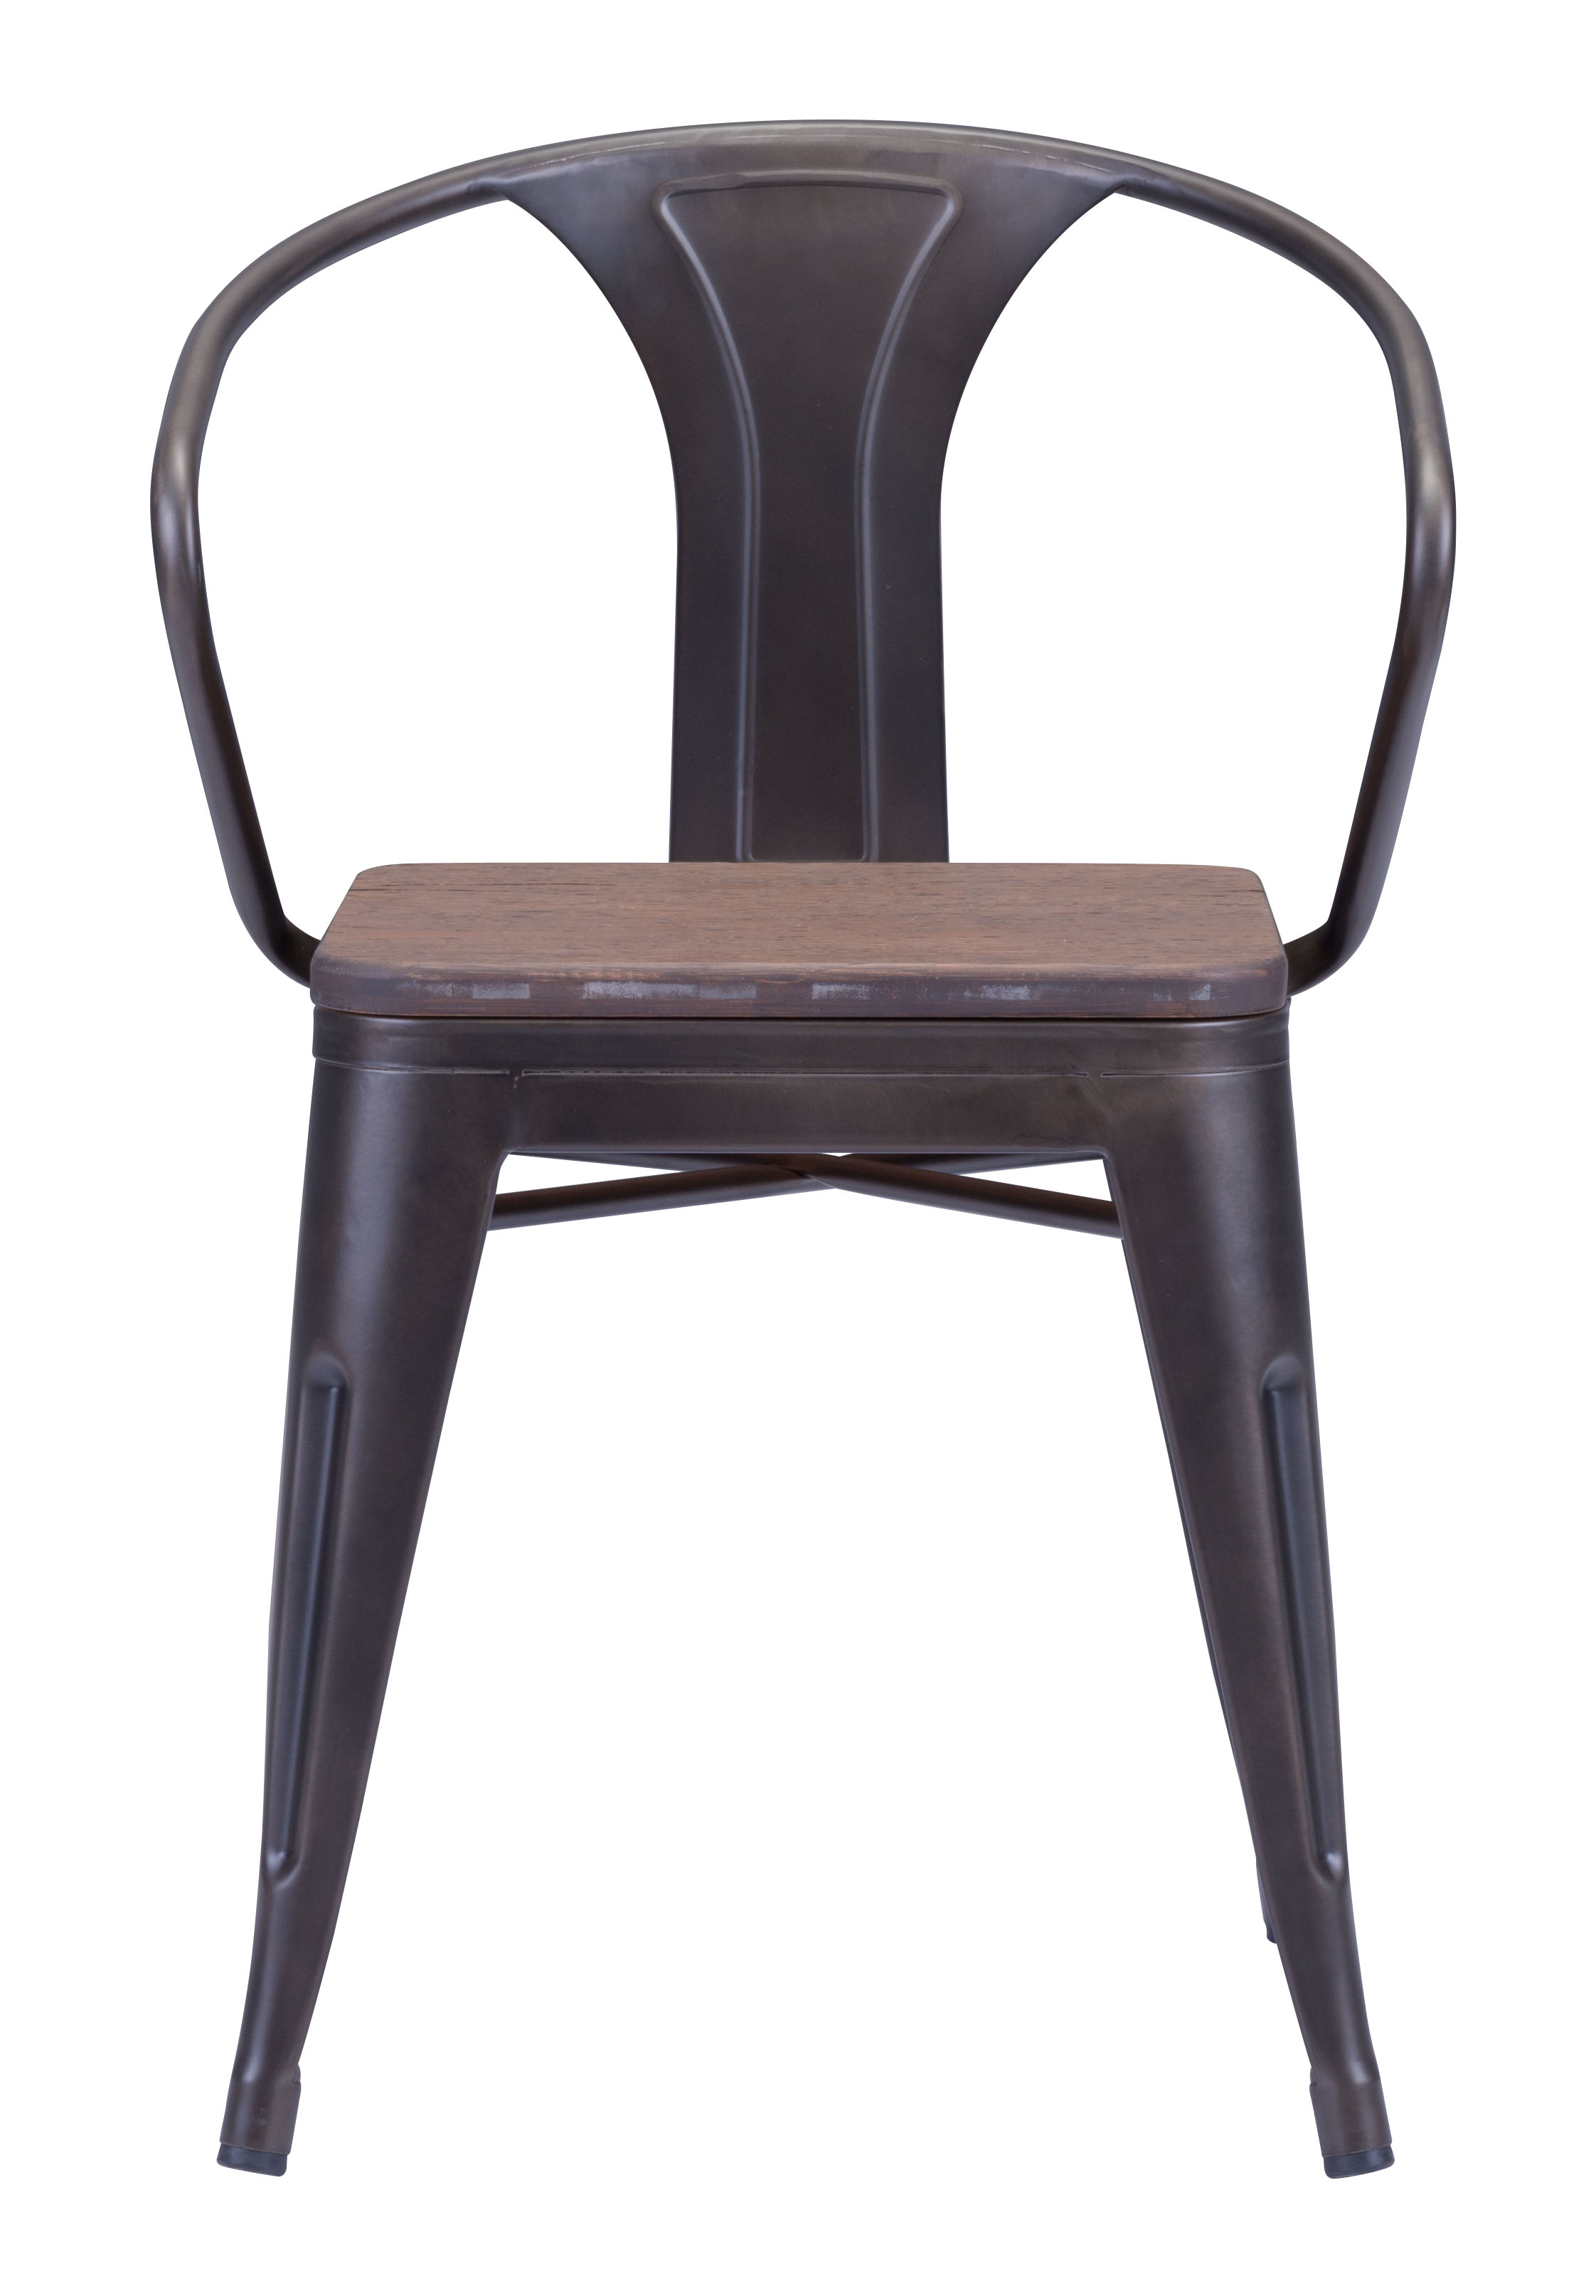 ... 108148 helix dining chair ...  sc 1 st  Advanced Interior Designs & ZUO HELIX DINING CHAIR WITH WOOD SEAT | GUNMETAL CHAIRS INDUSTRIAL